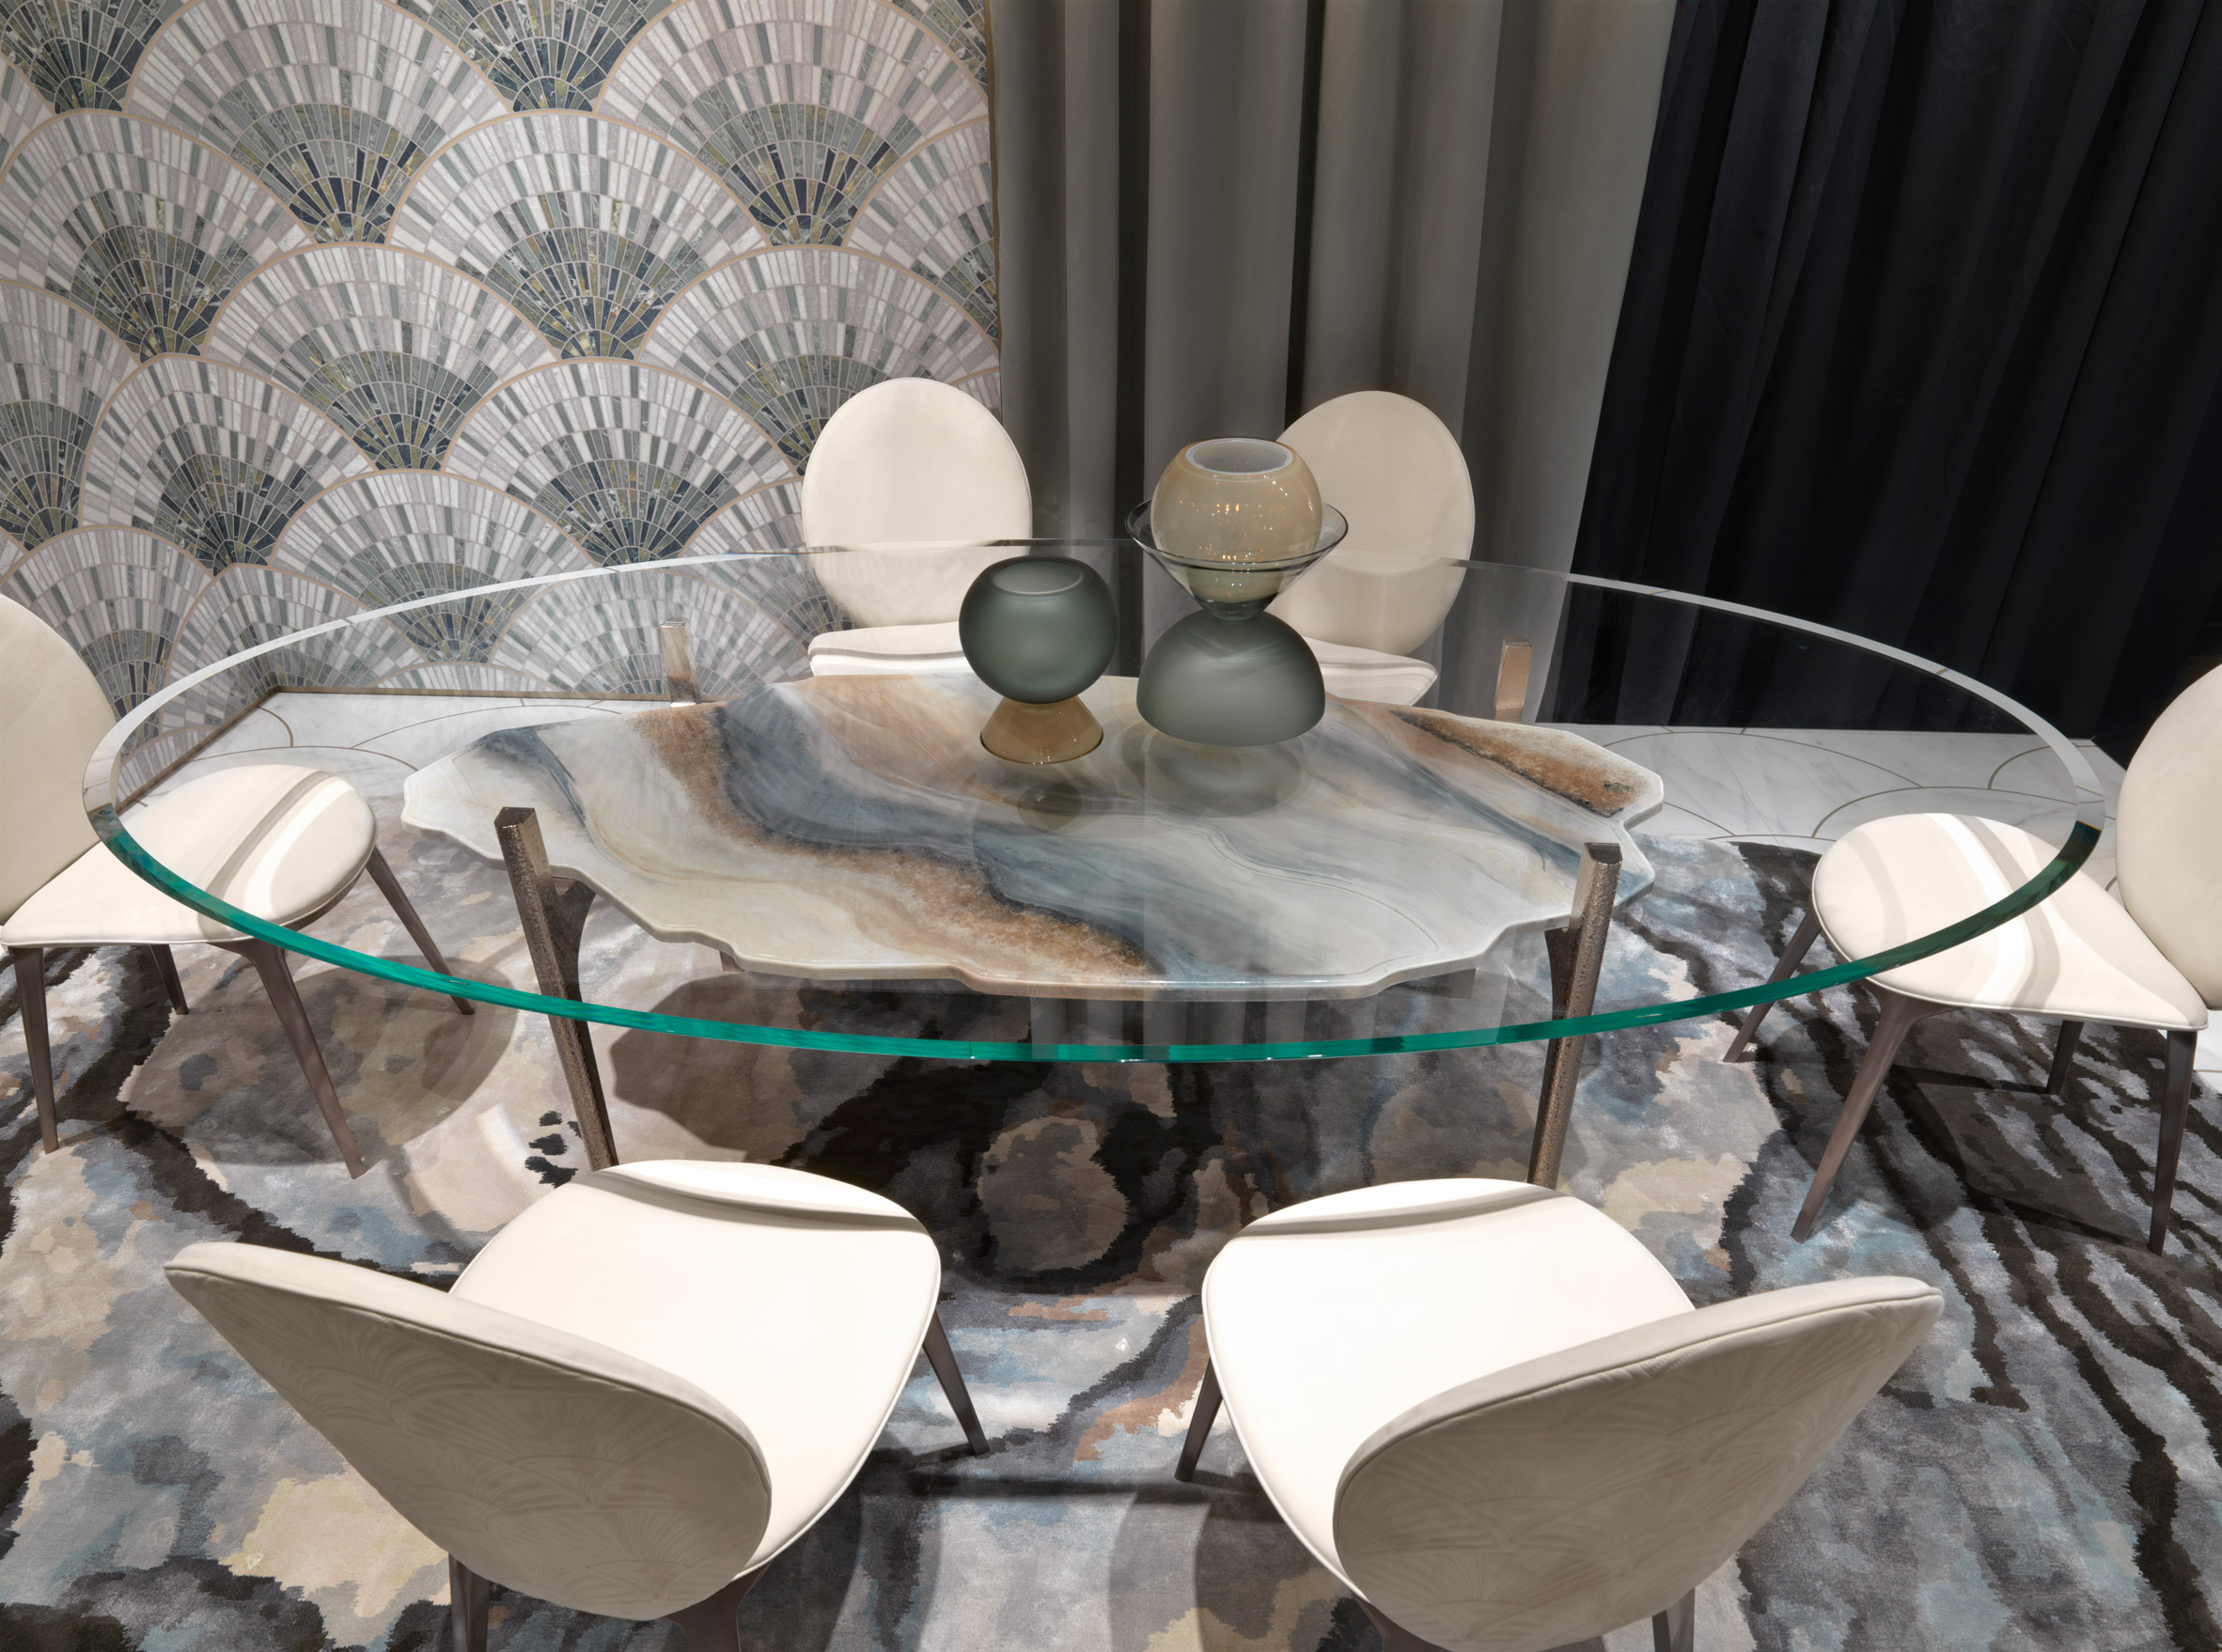 Alessandro La Spada's Arkady dining table from the Beauty collection